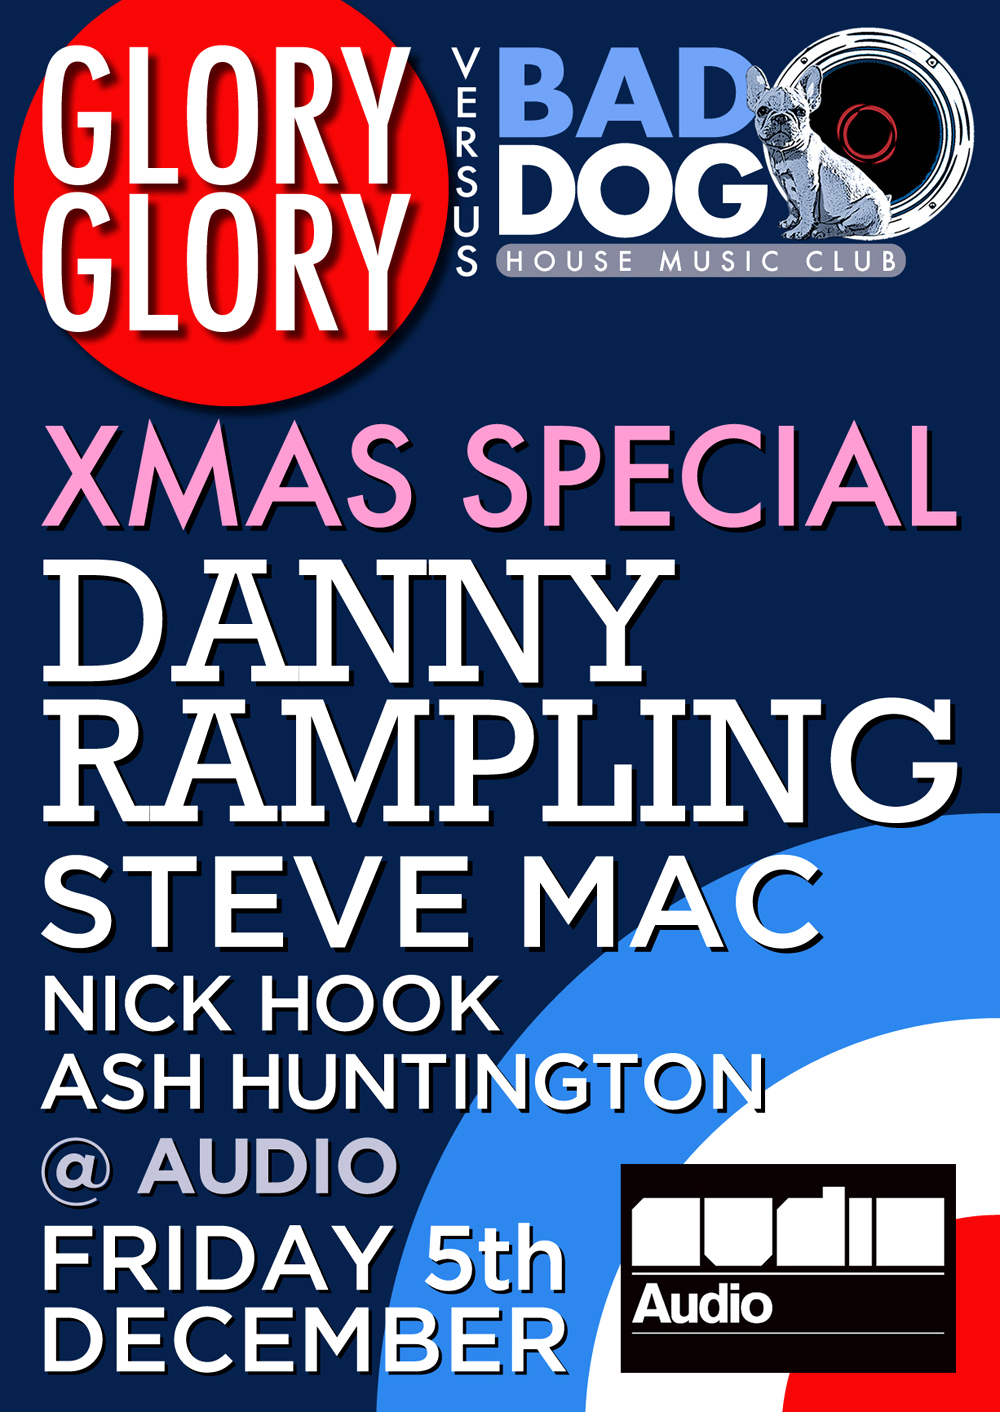 Glory Glory Vs Bad Dog Xmas flyer